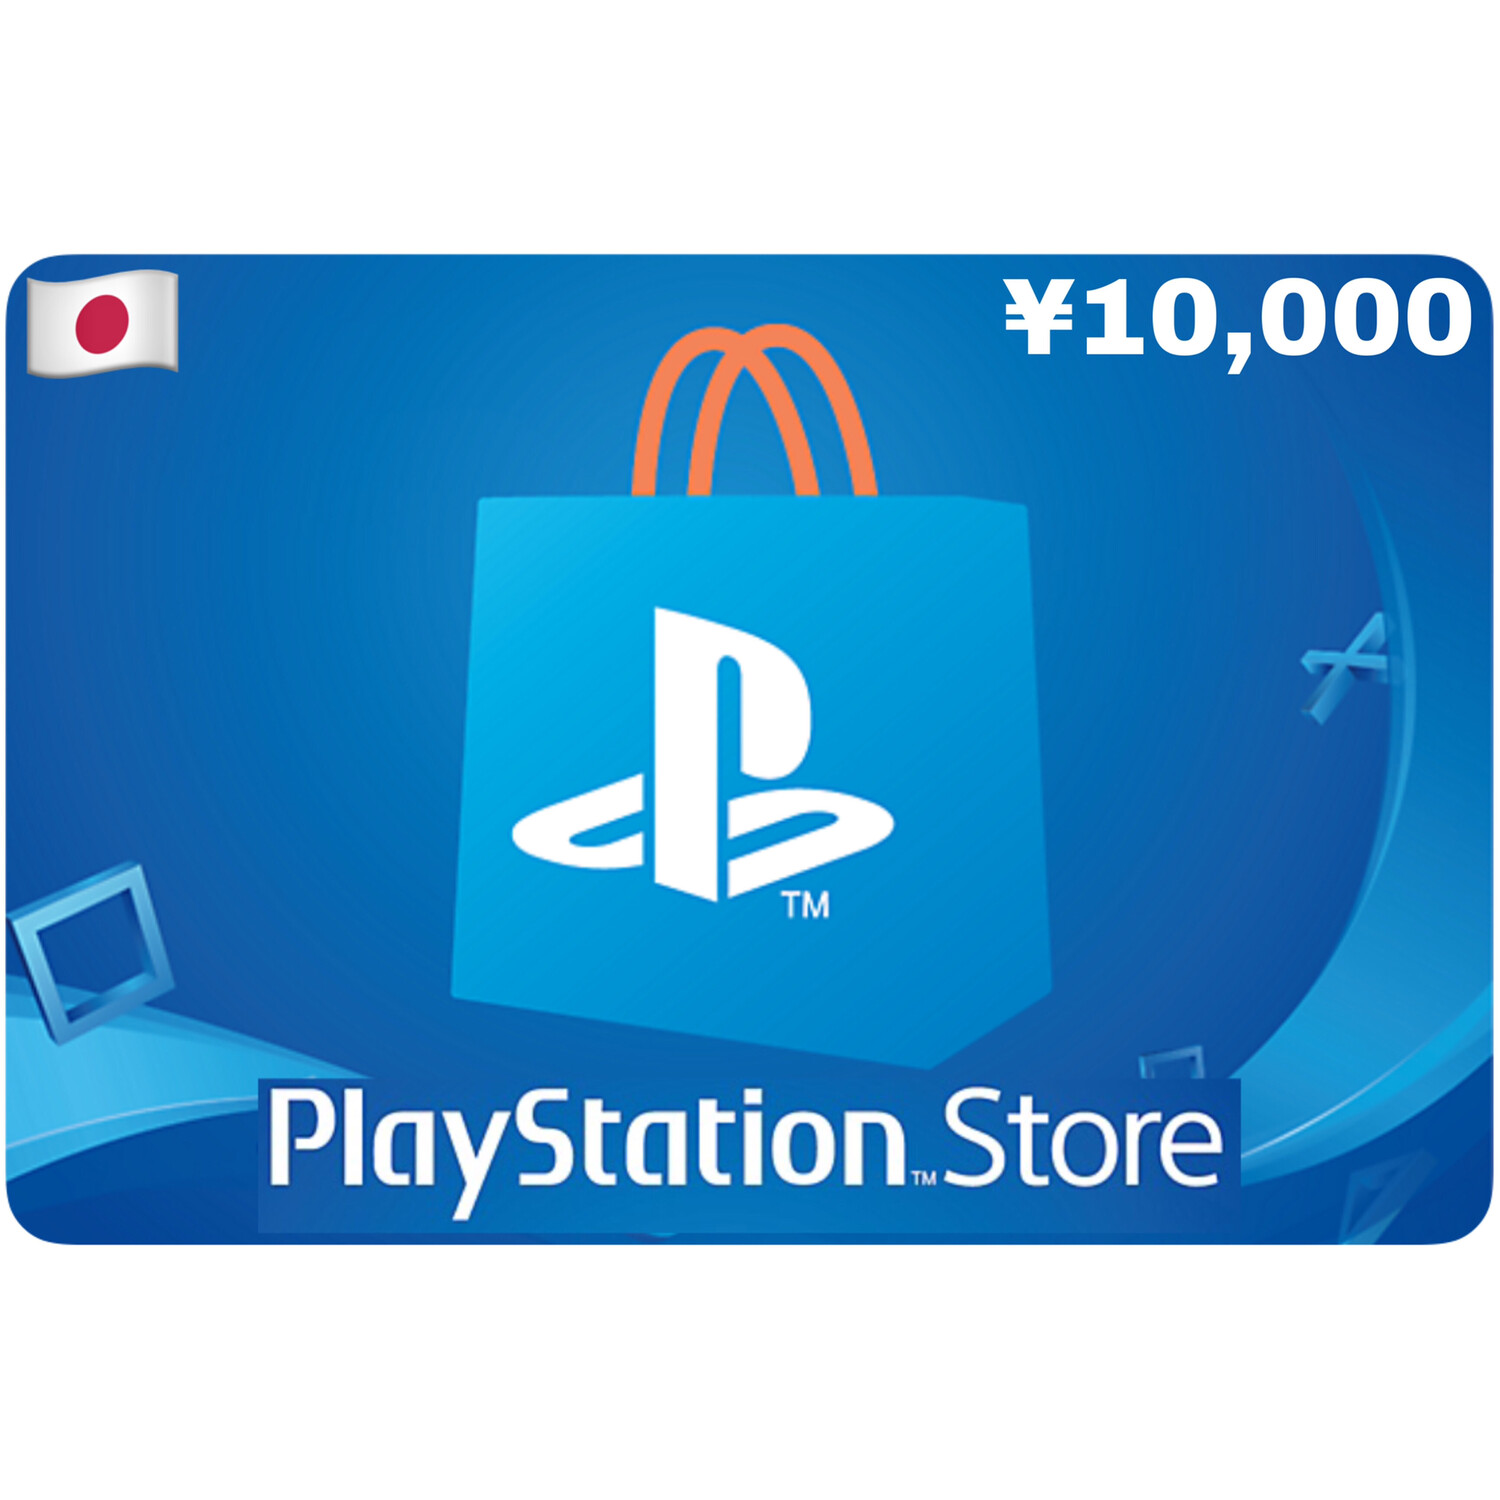 Playstation Store Gift Card Japan ¥10,000